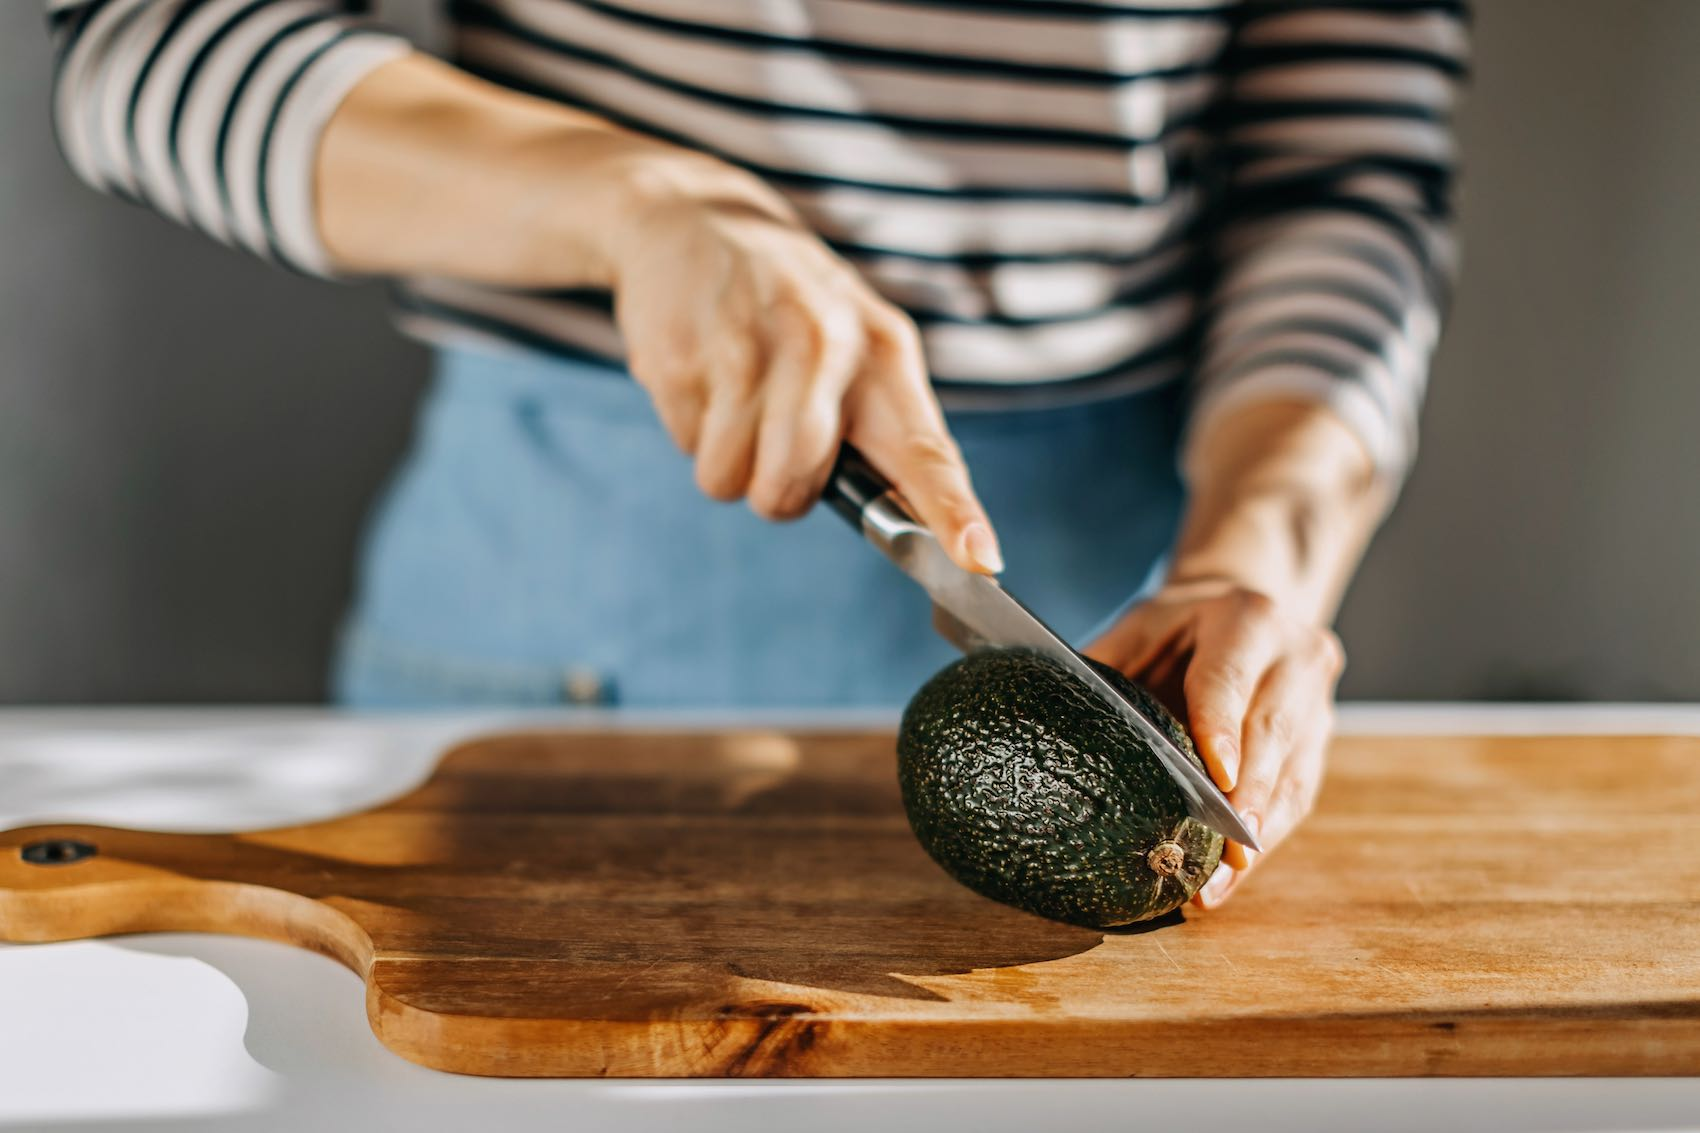 Thumbnail for This Magical Avocado Hack Removes the Pit Instantly With Just Your Fingers